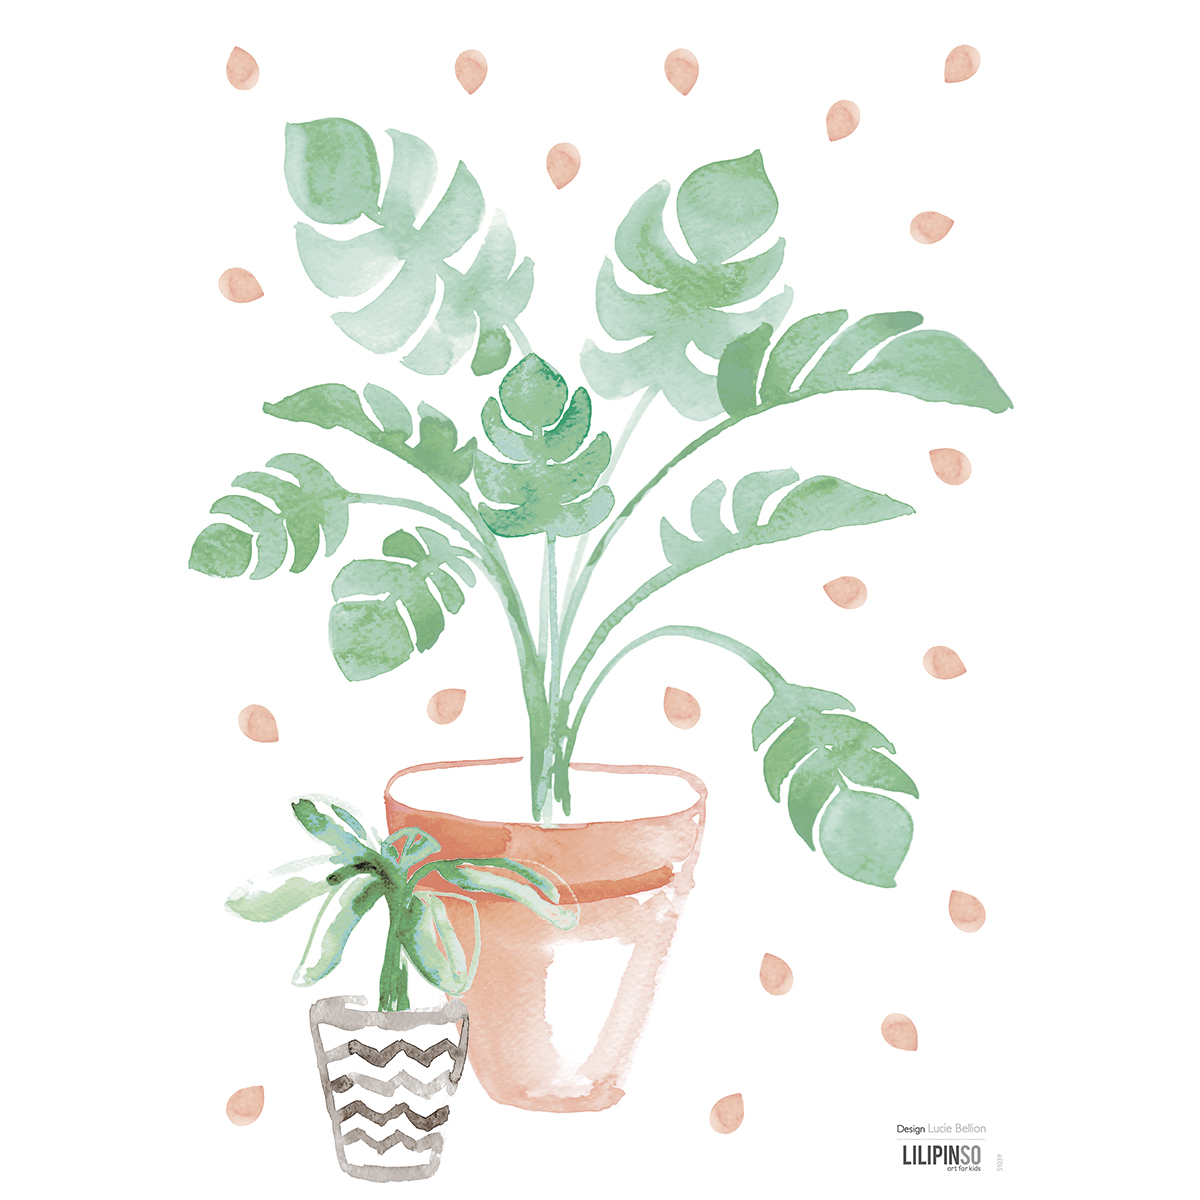 Stickers plante exotique - Stickers de Lilipinso